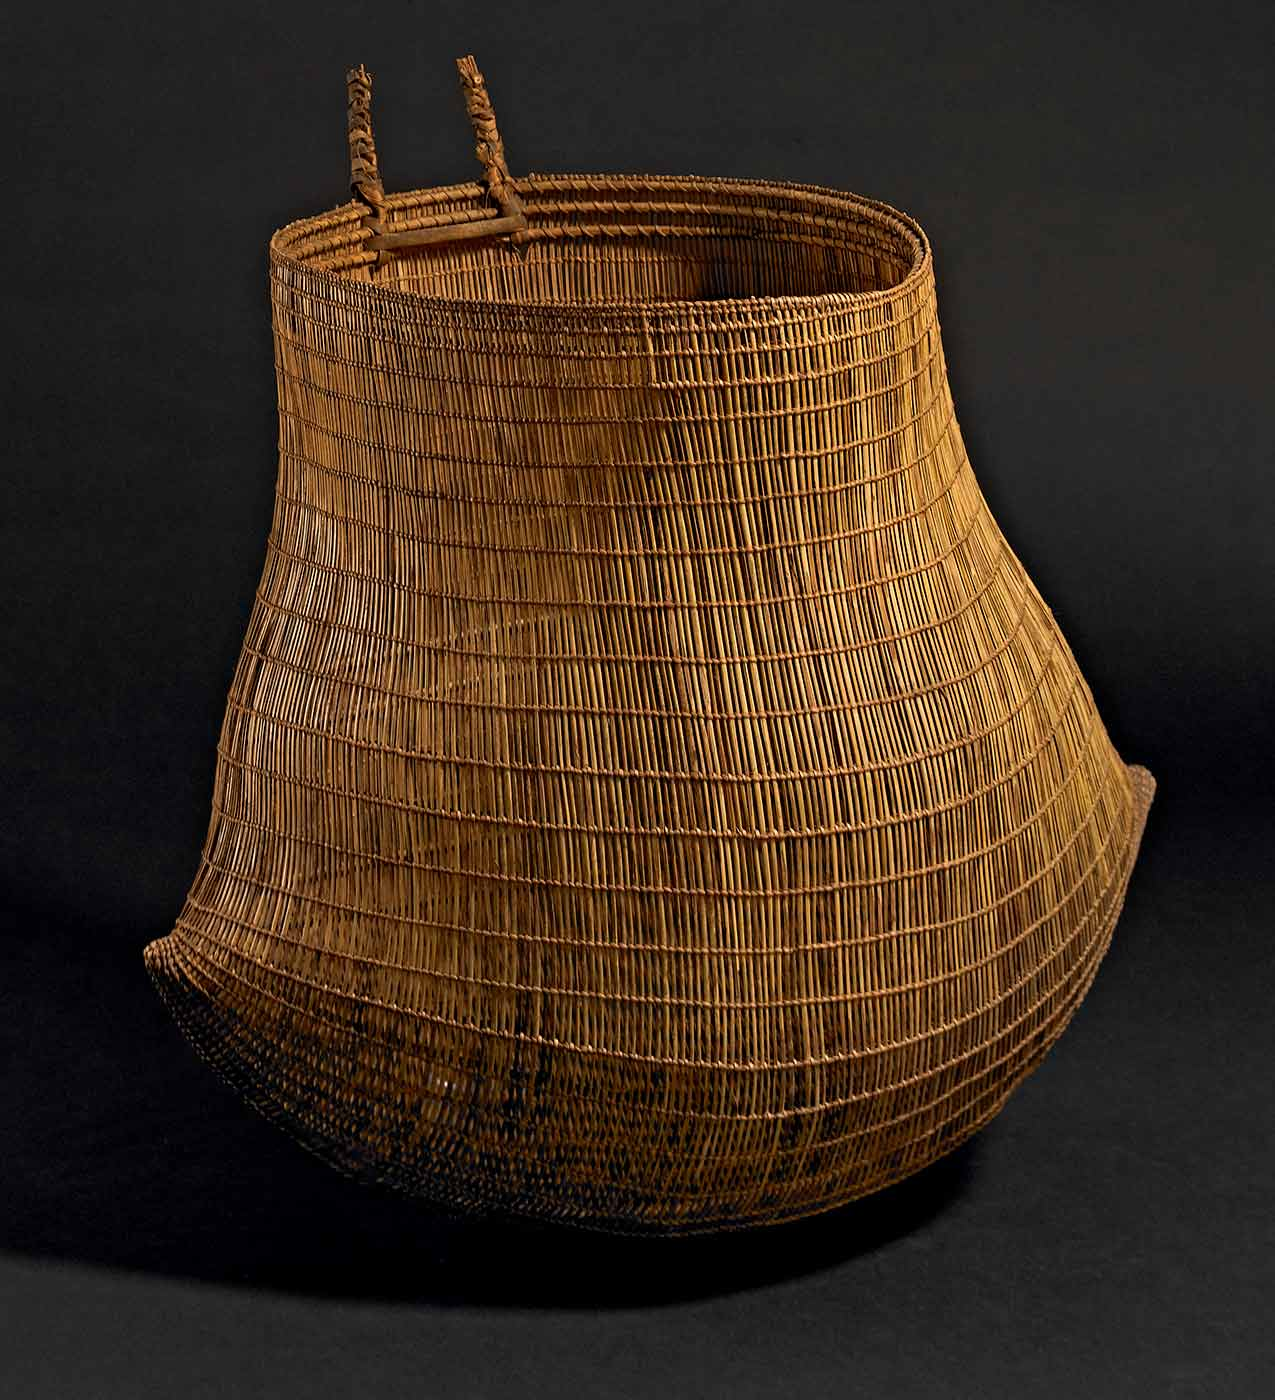 Roughly cylindrical basket woven from fibre, with two small handles extending from the opening. - click to view larger image